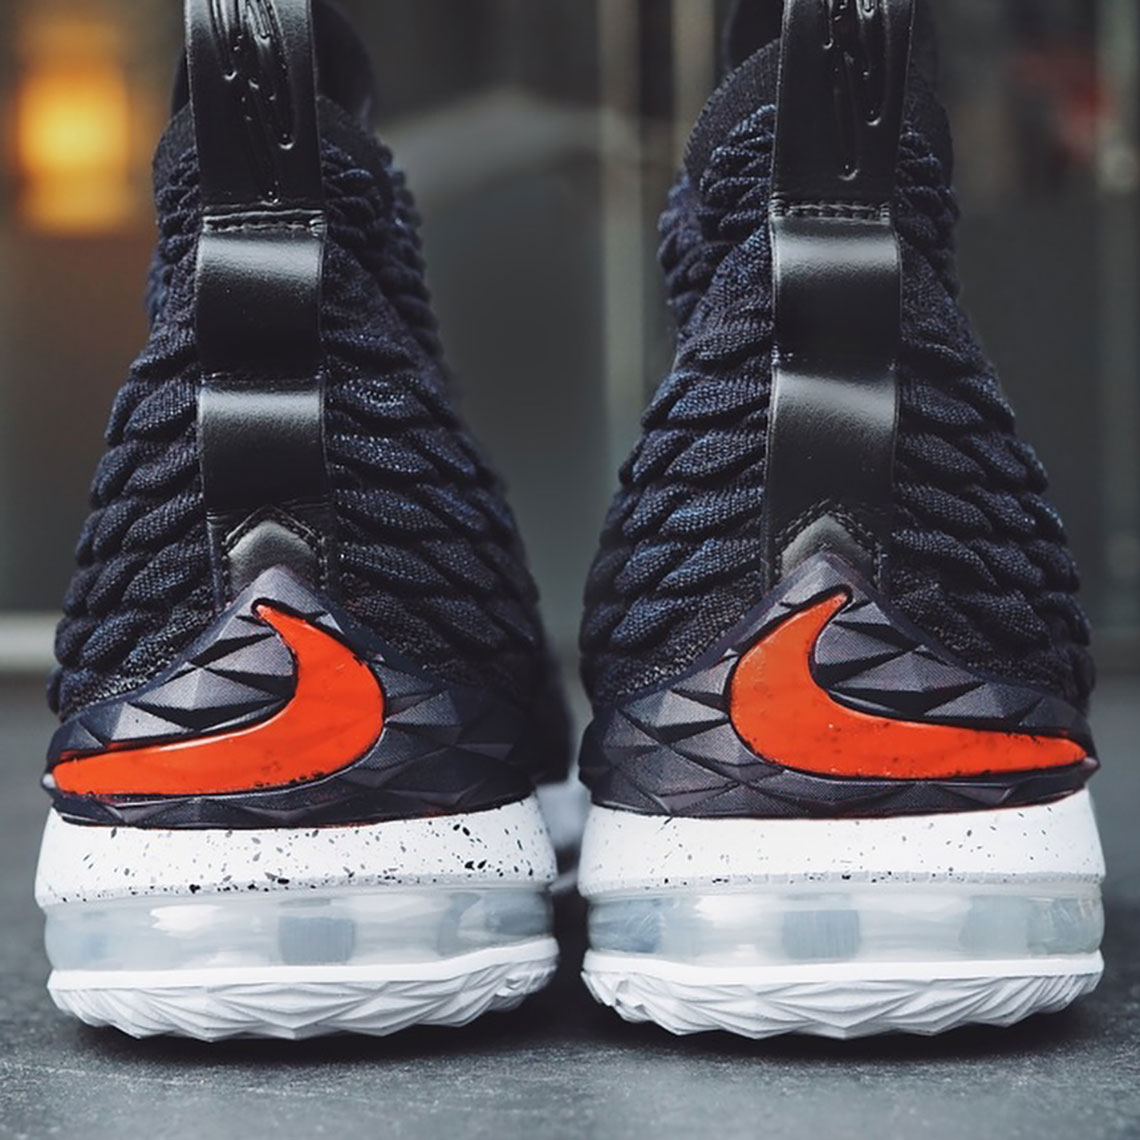 2d5d4fcdf5a Quavo Gifts His High School With Custom Nike LeBron 15 By Mache ...